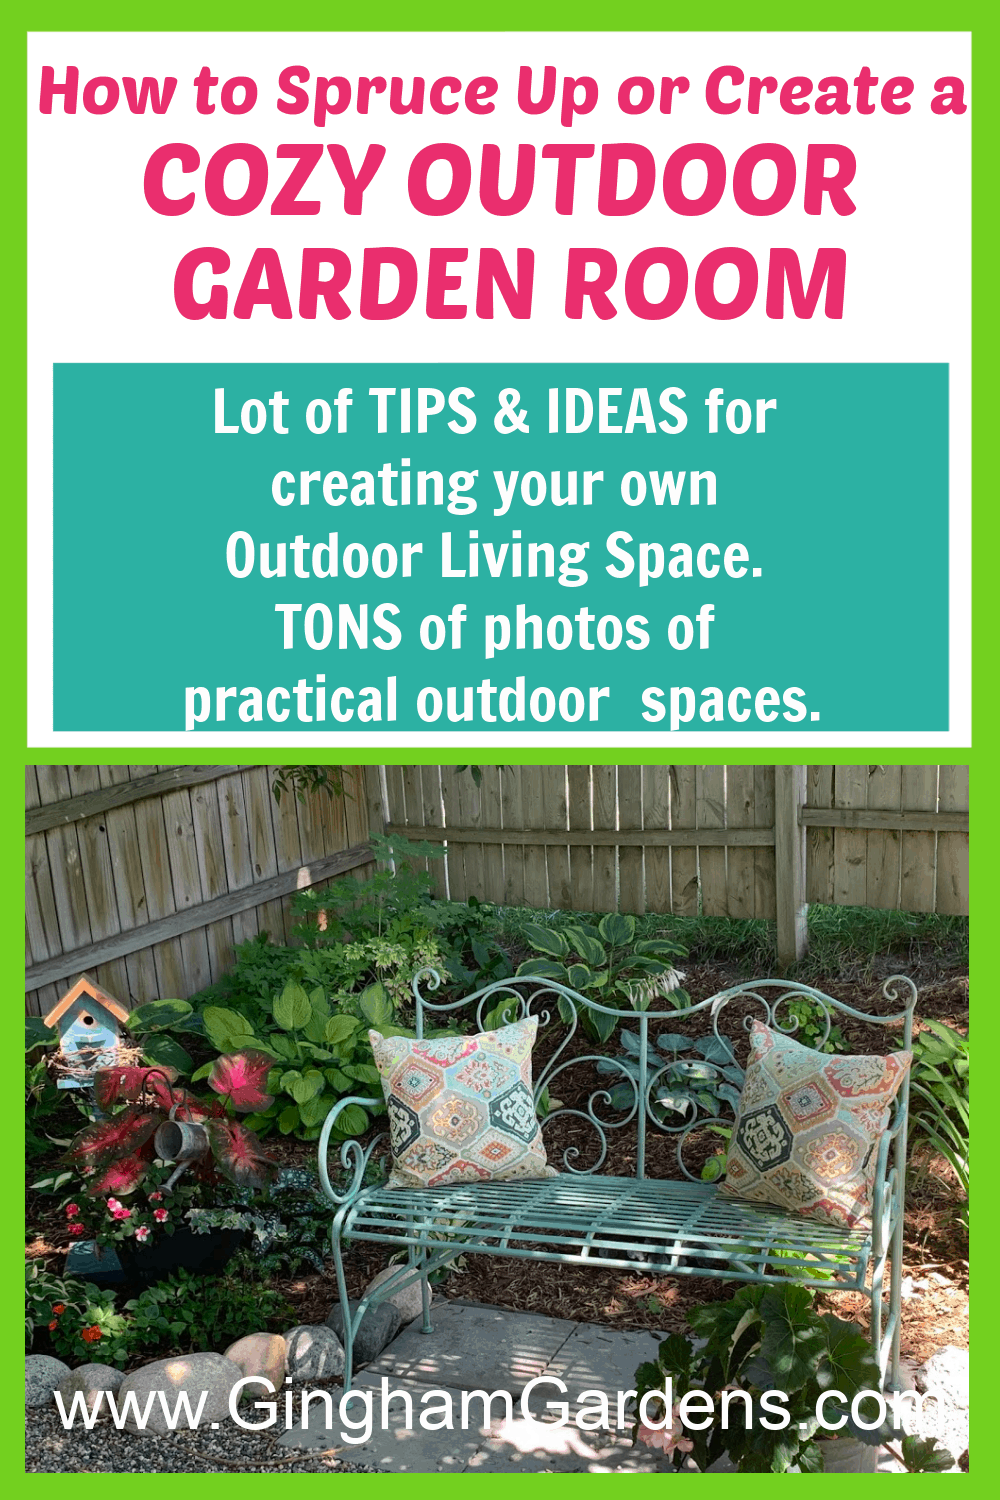 Image of a bench in a garden with text overlay How to Spruce Up or Create a Cozy Outdoor Garden Room